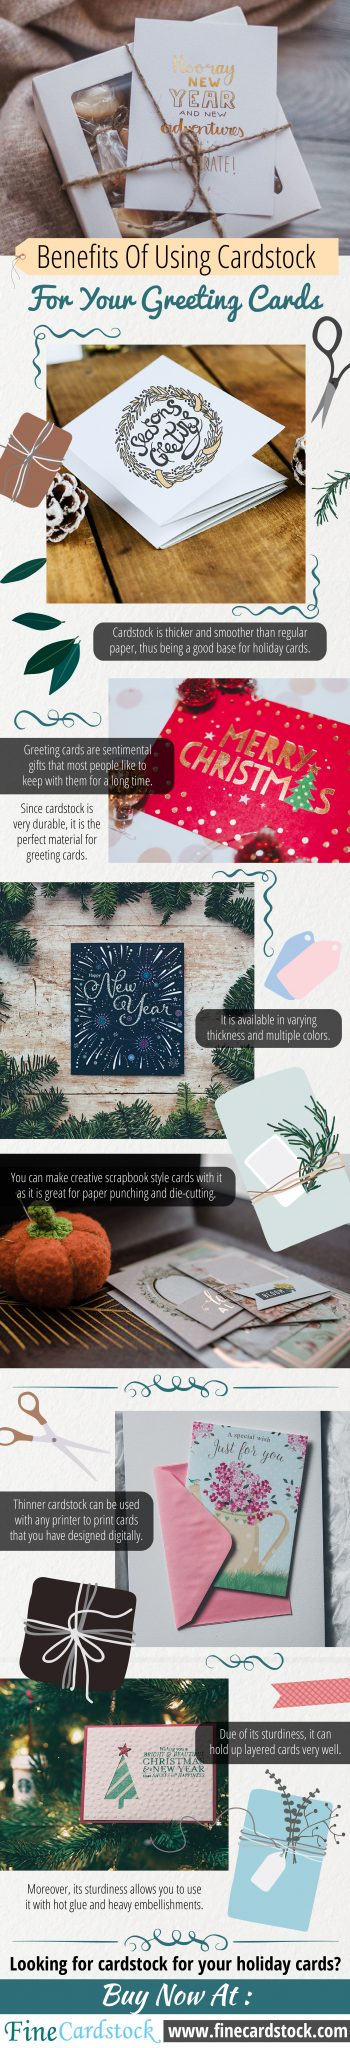 Image showing Infographic about Greetings card